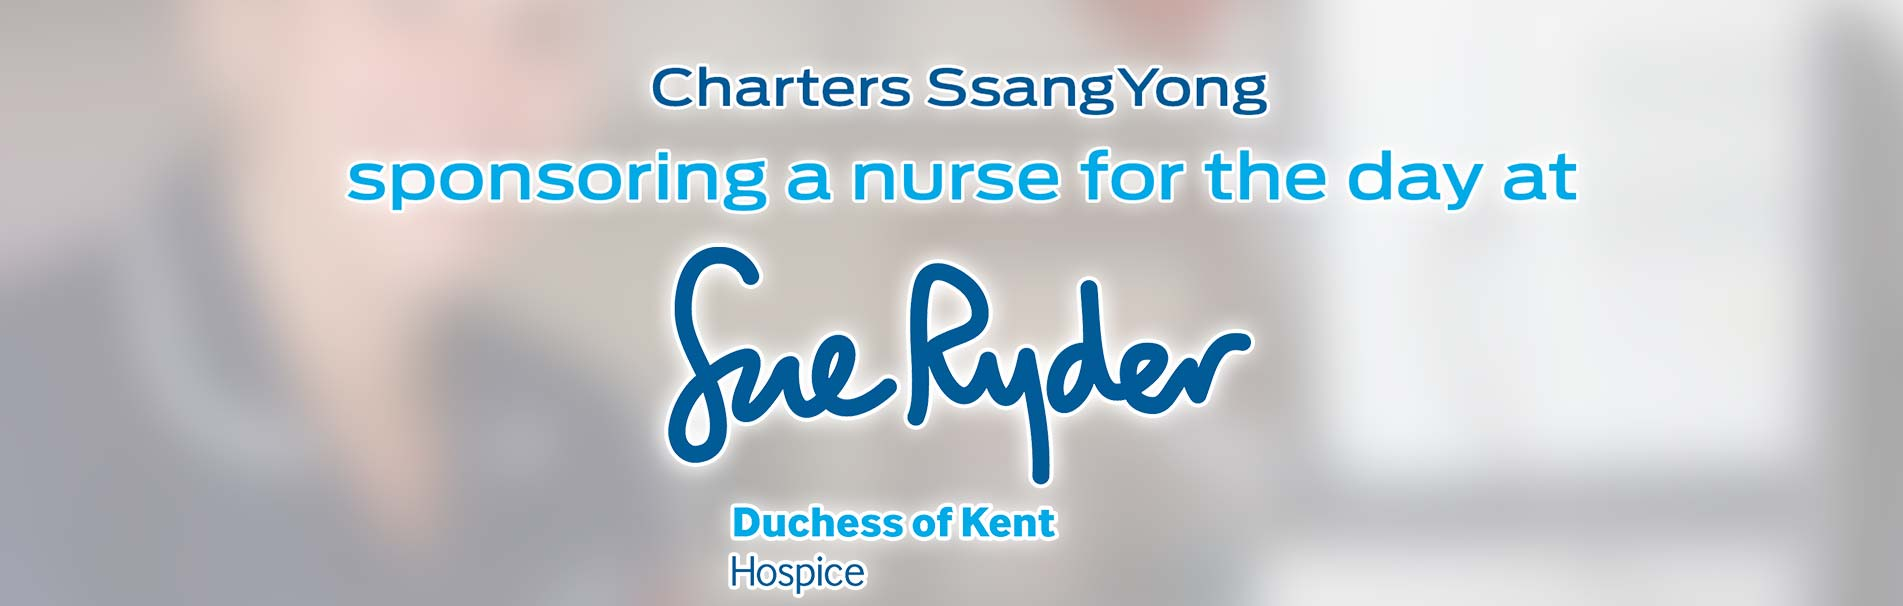 sue-ryder-duchess-of-kent-hospice-nurse-for-a-day-sponsored-by-charters-ssangyong-reading-sli